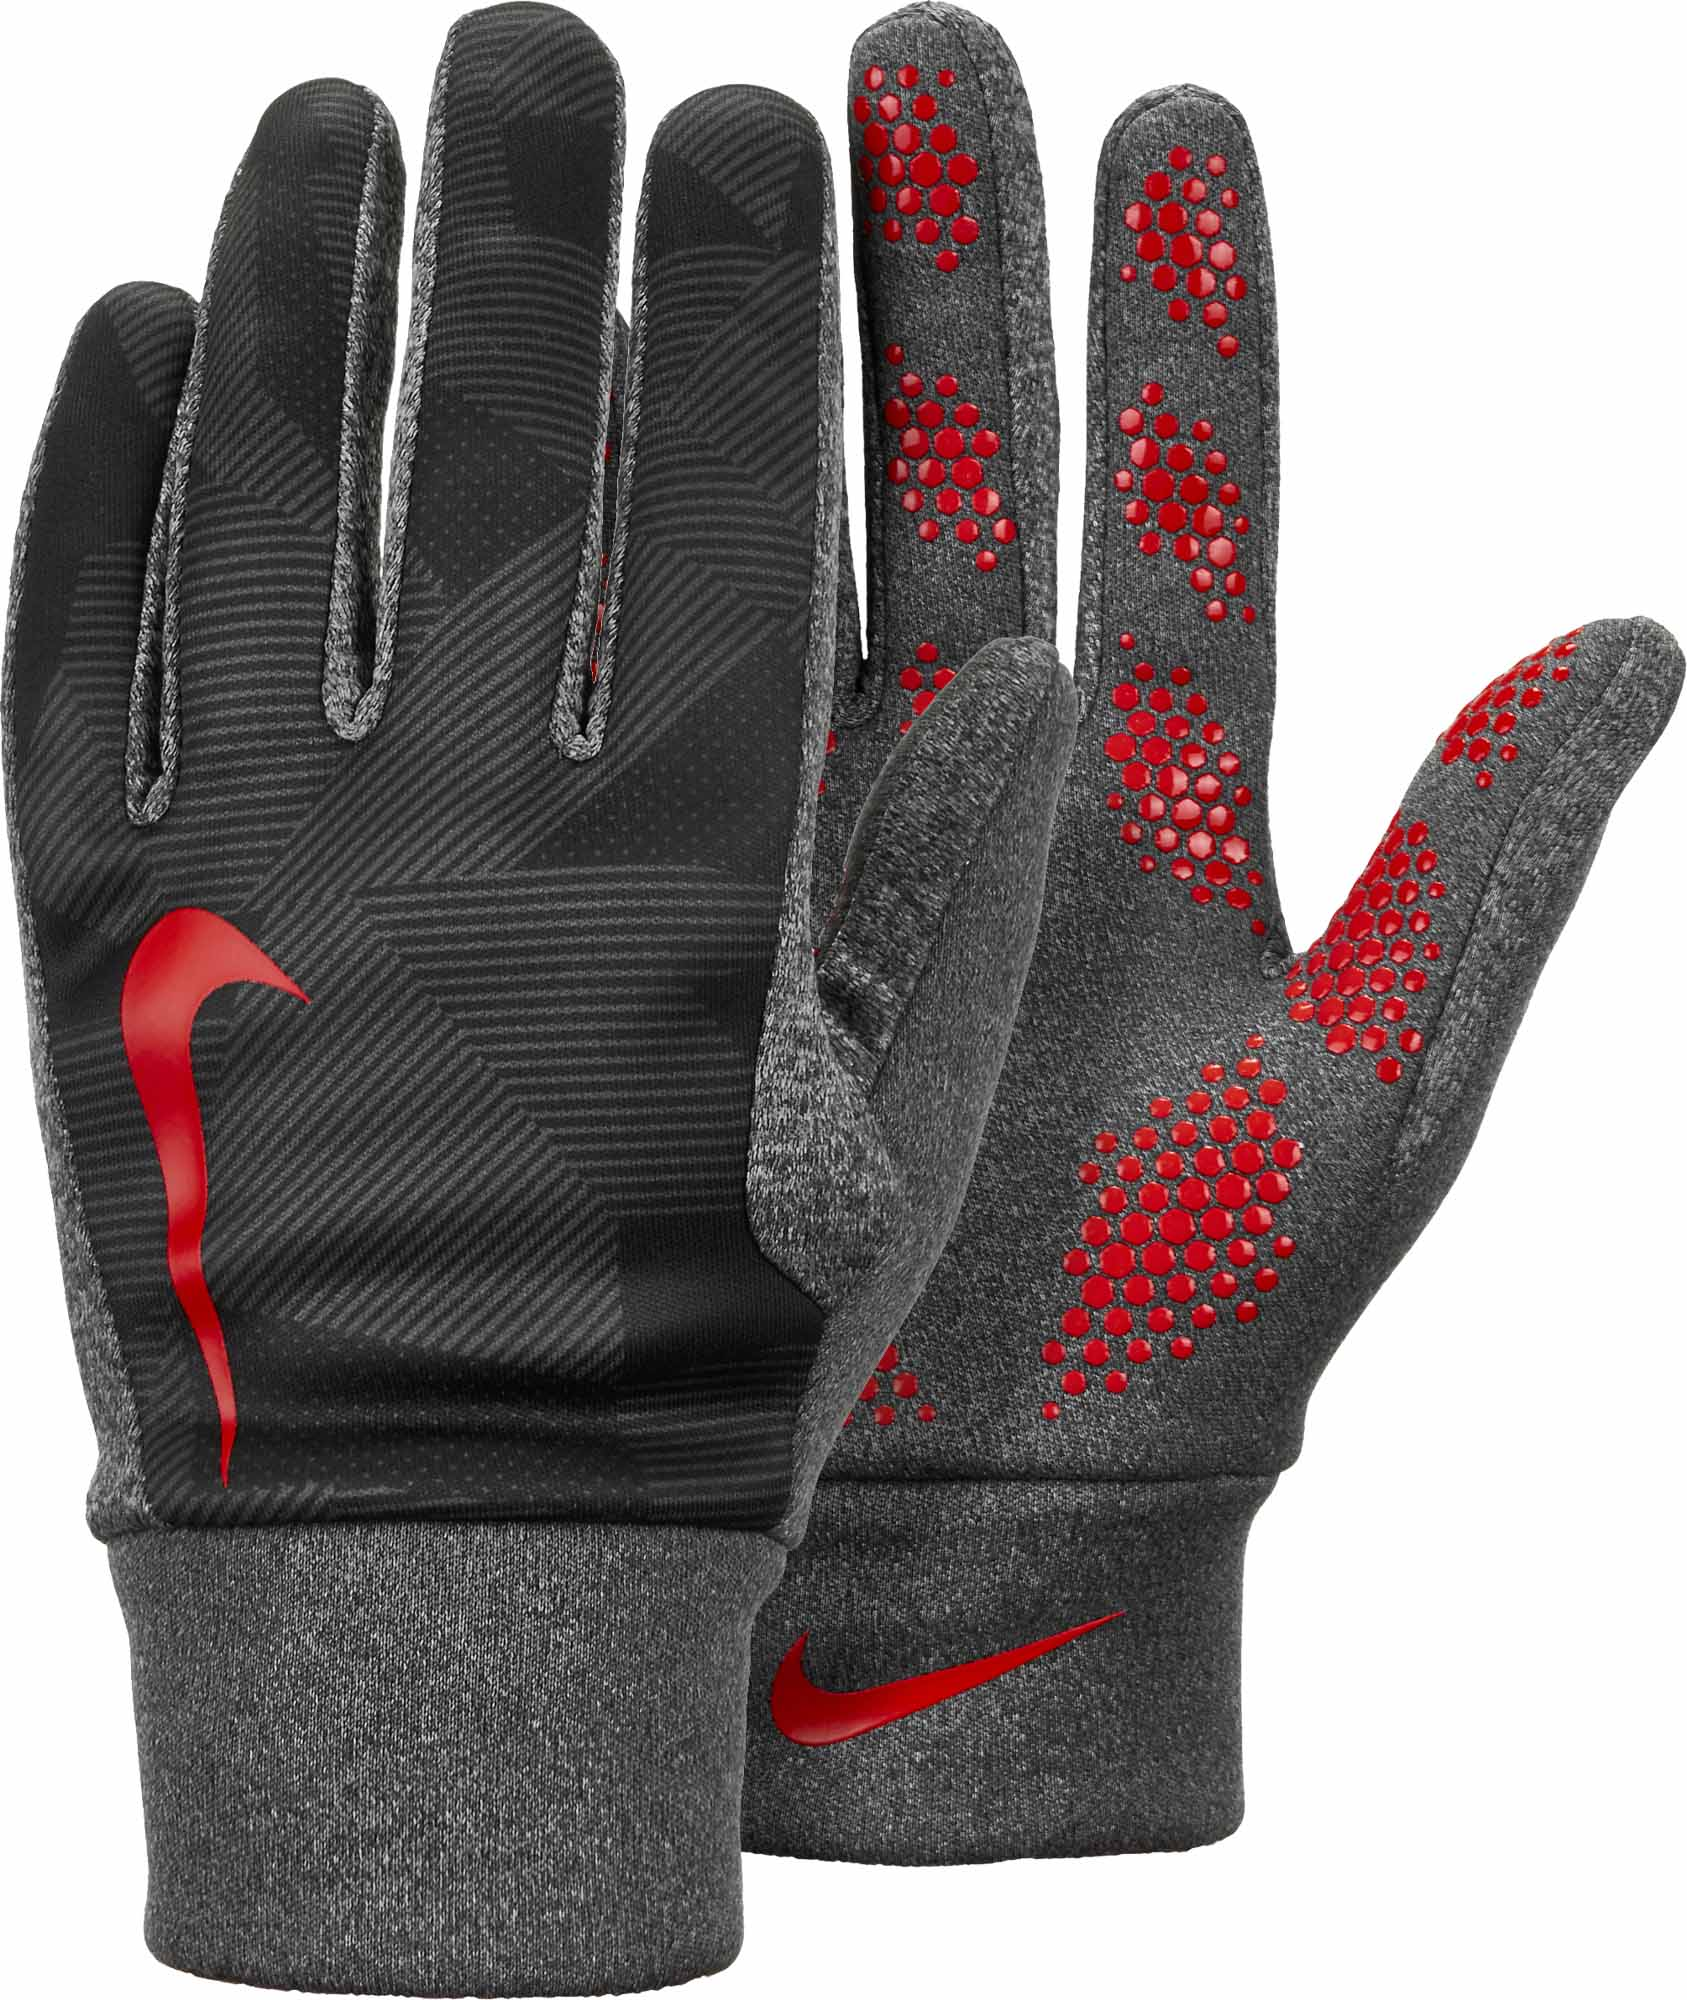 Nike Soccer Gloves: Kids Nike Hyperwarm Field Player Soccer Gloves